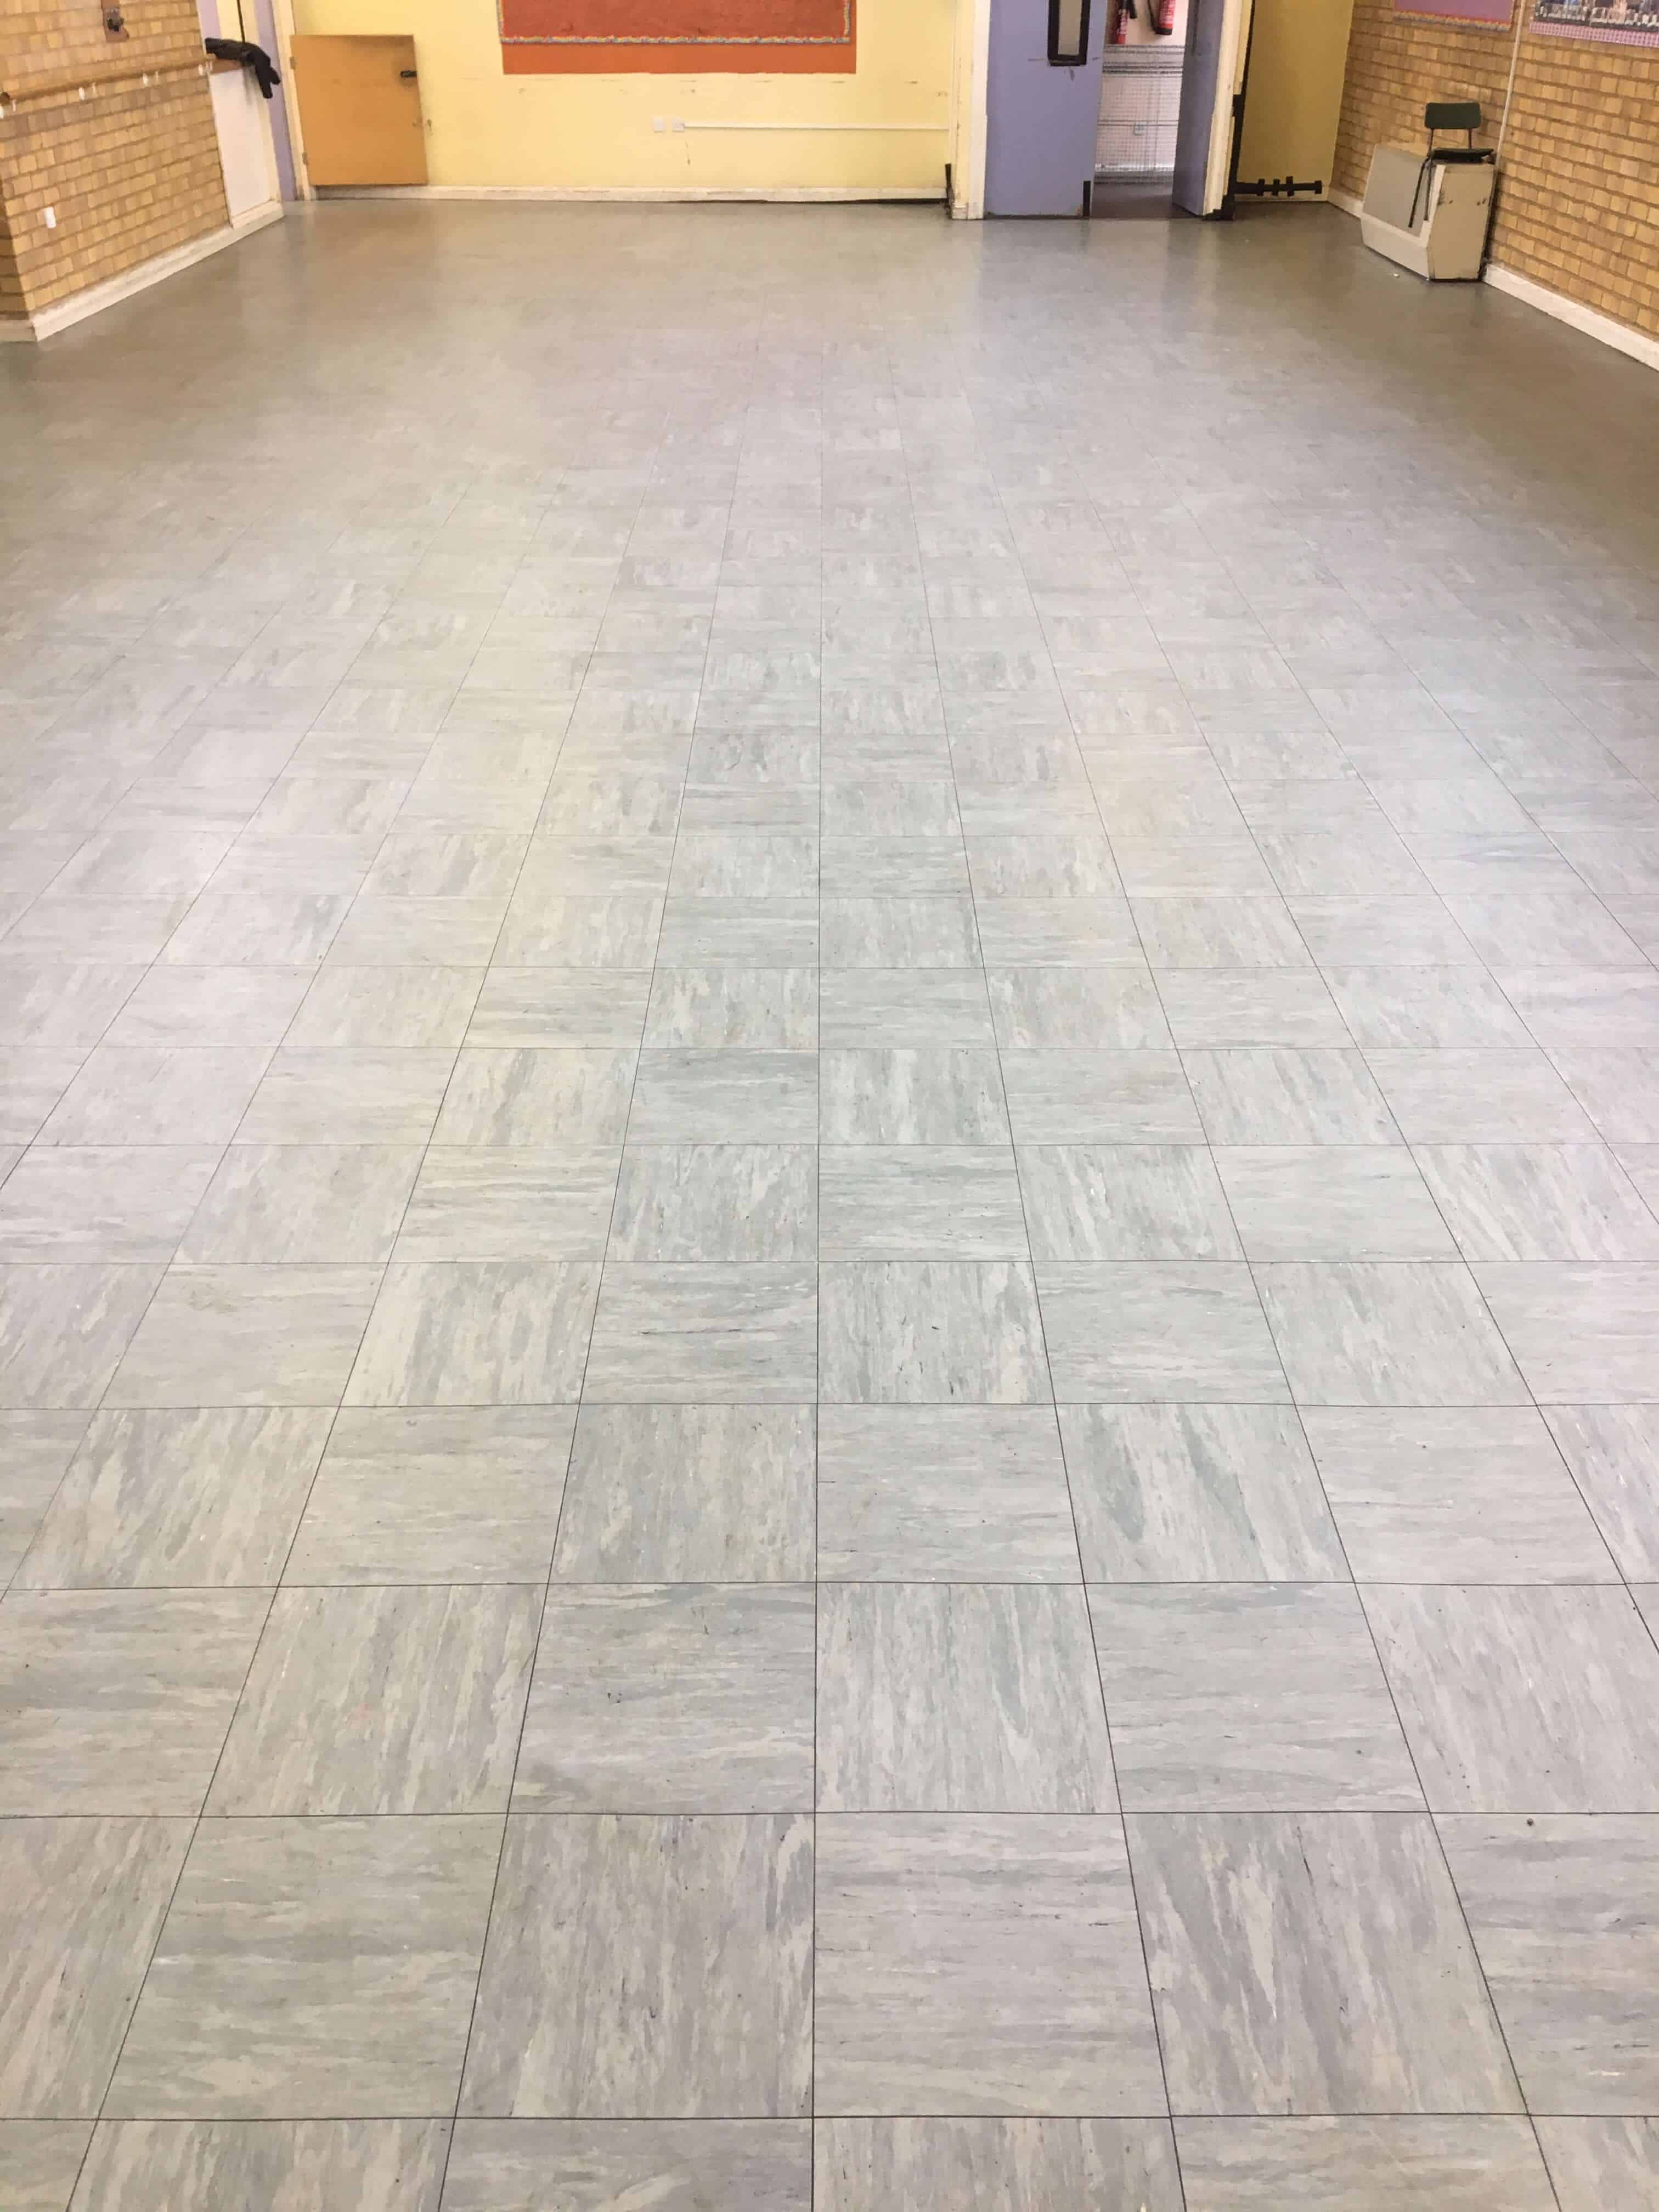 Floor cleaning and sealing